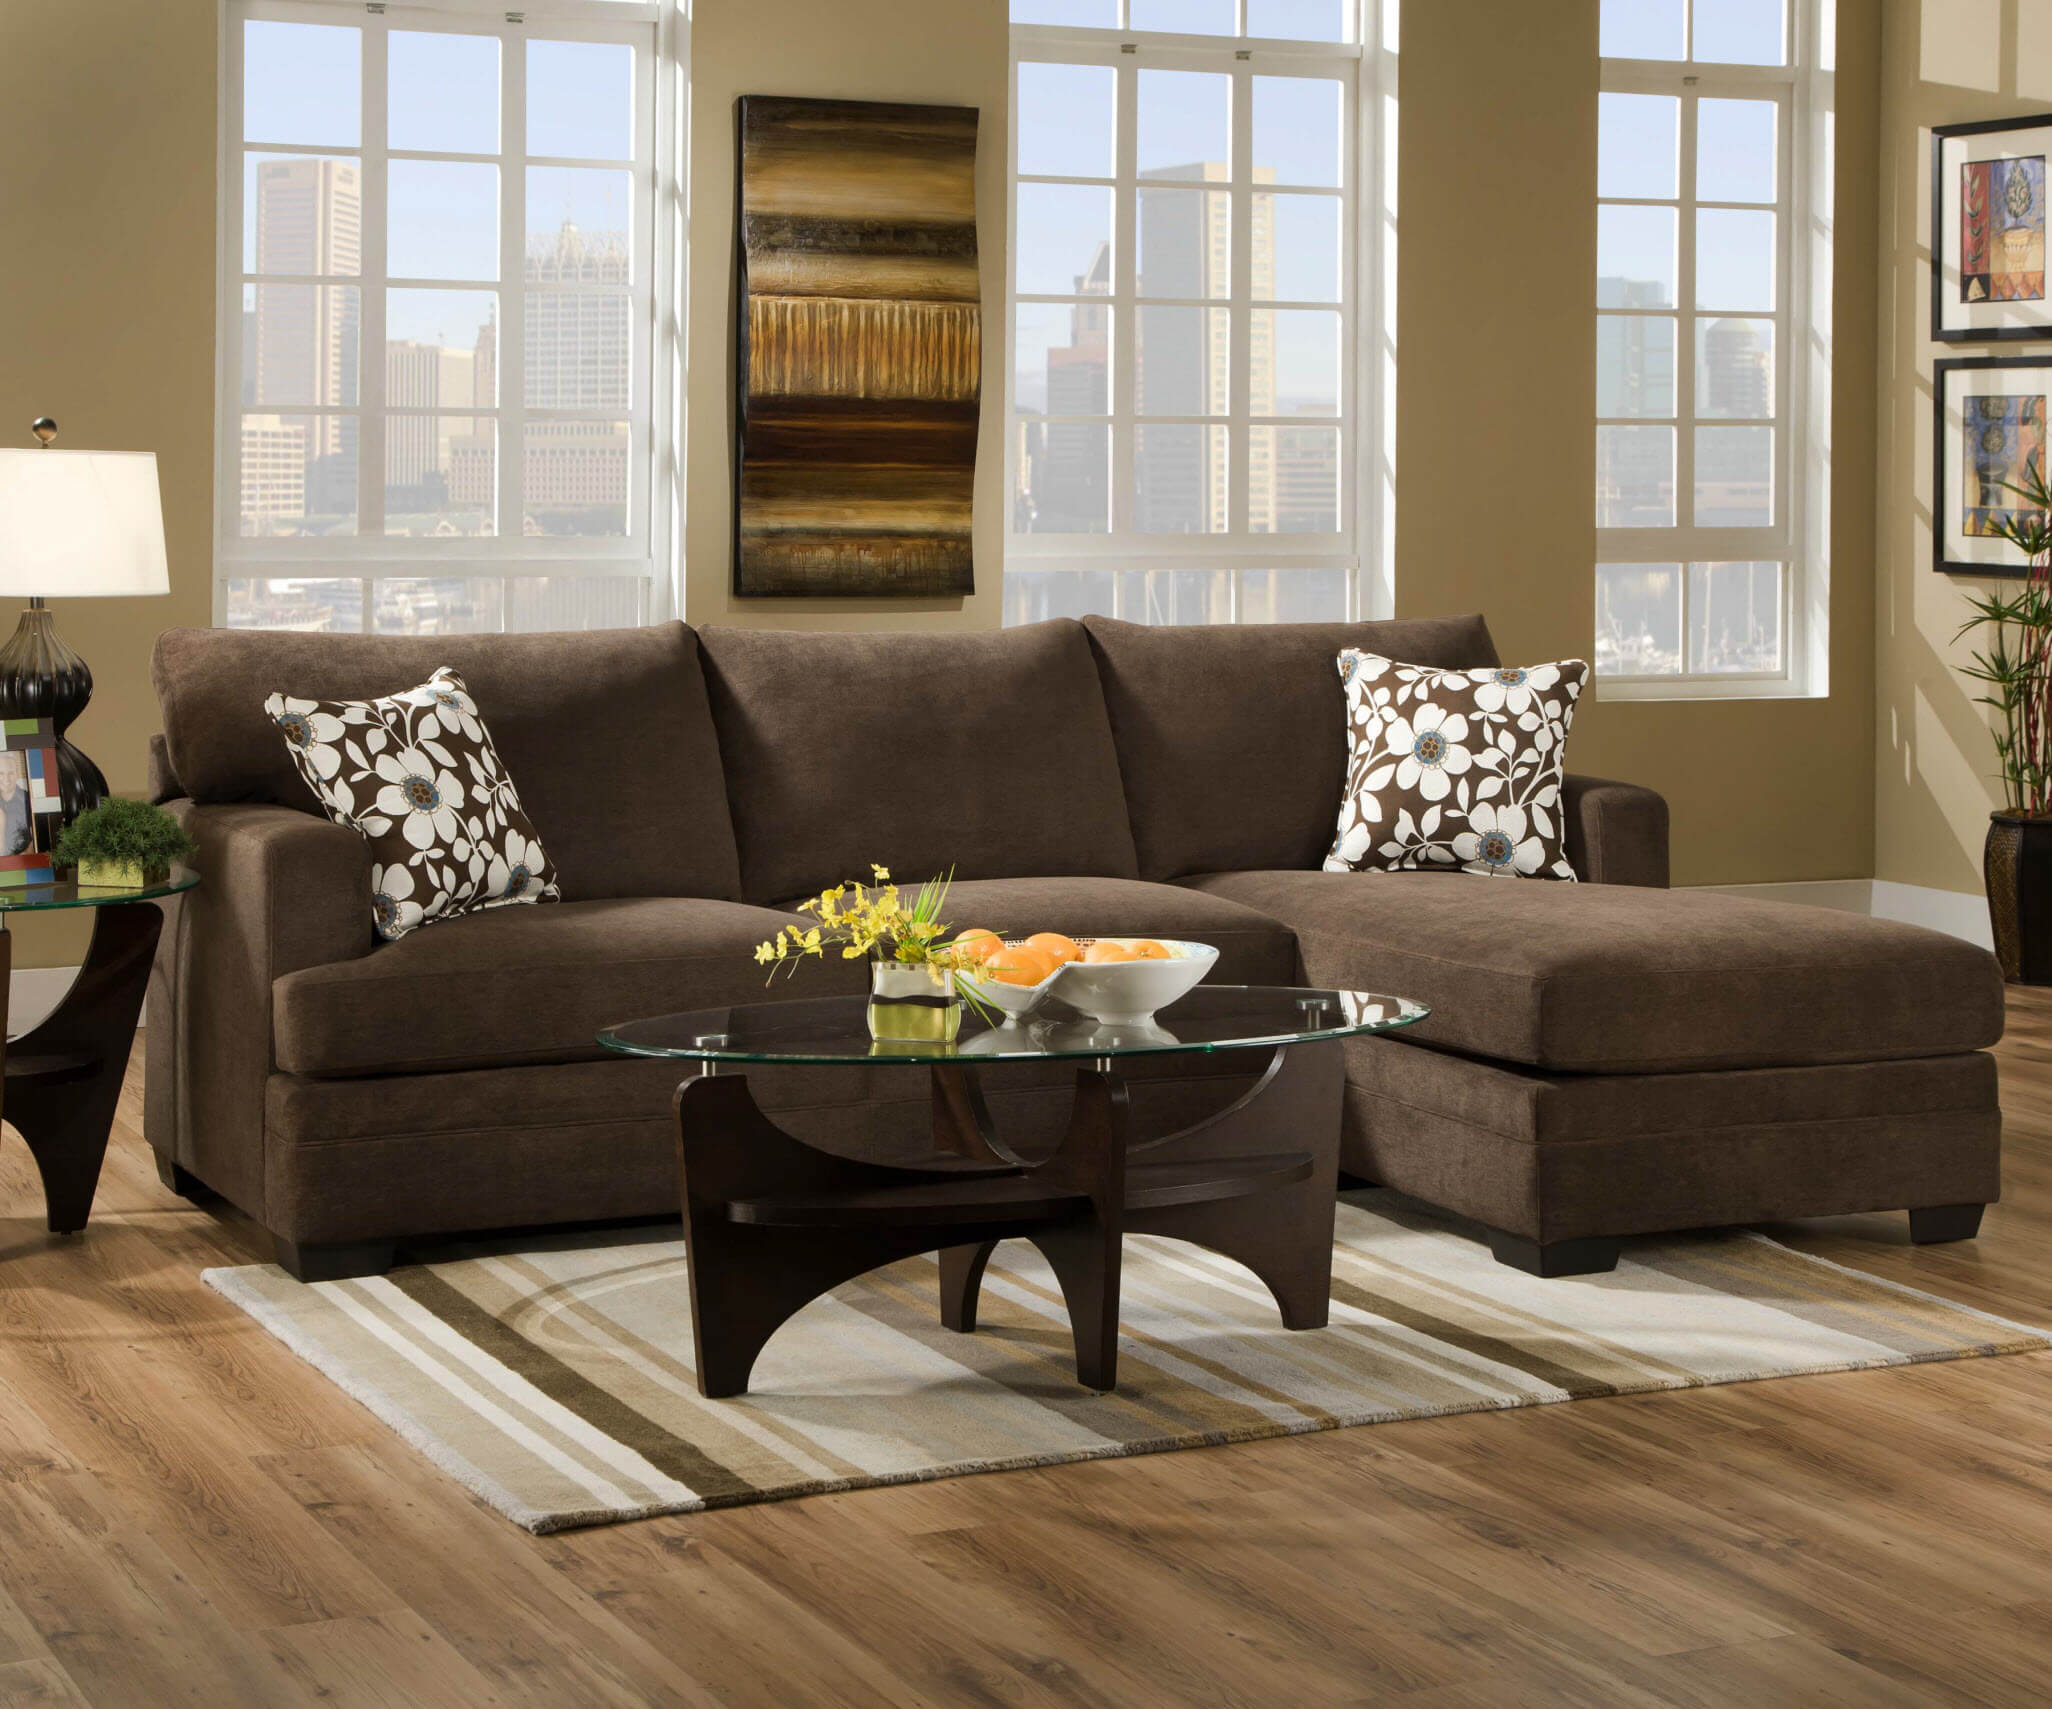 Simmons caprice java sectional sectional sofa sets - Simmons living room furniture sets ...